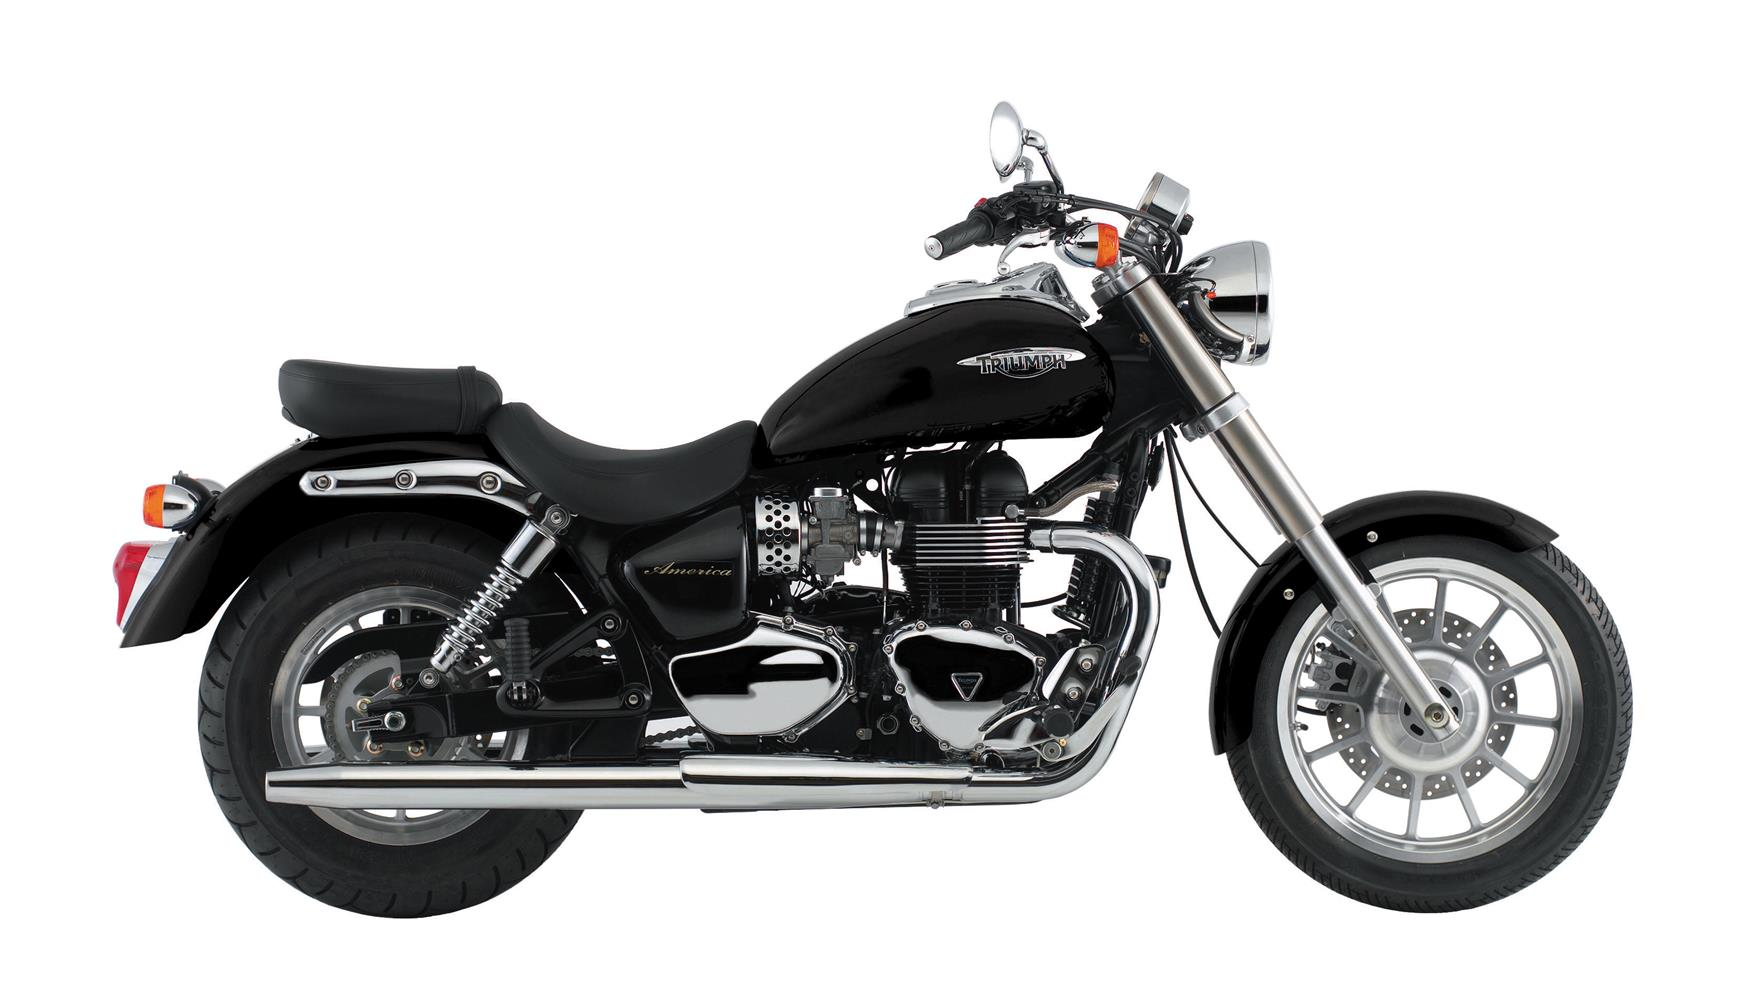 TRIUMPH BONNEVILLE AMERICA LT (2014-on) Review | MCN